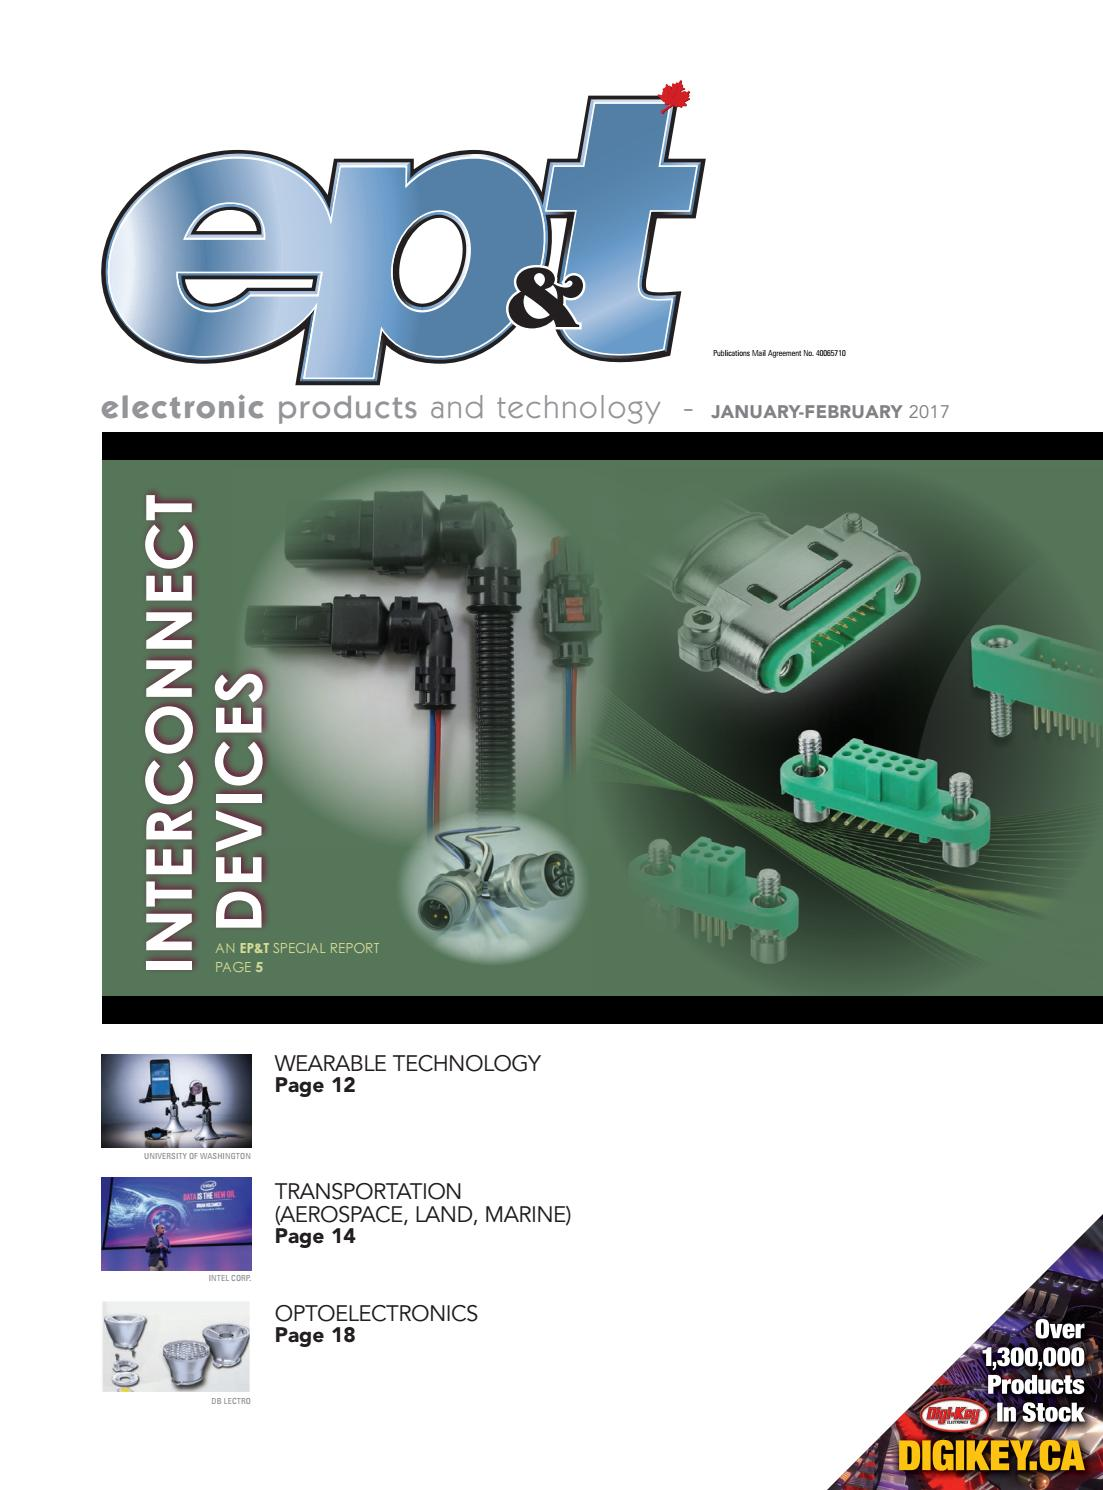 Electronic Products And Technology Jan Feb 2017 By Annex Business Gps Circuit Assemblydata Collection Board Assembly Media Issuu